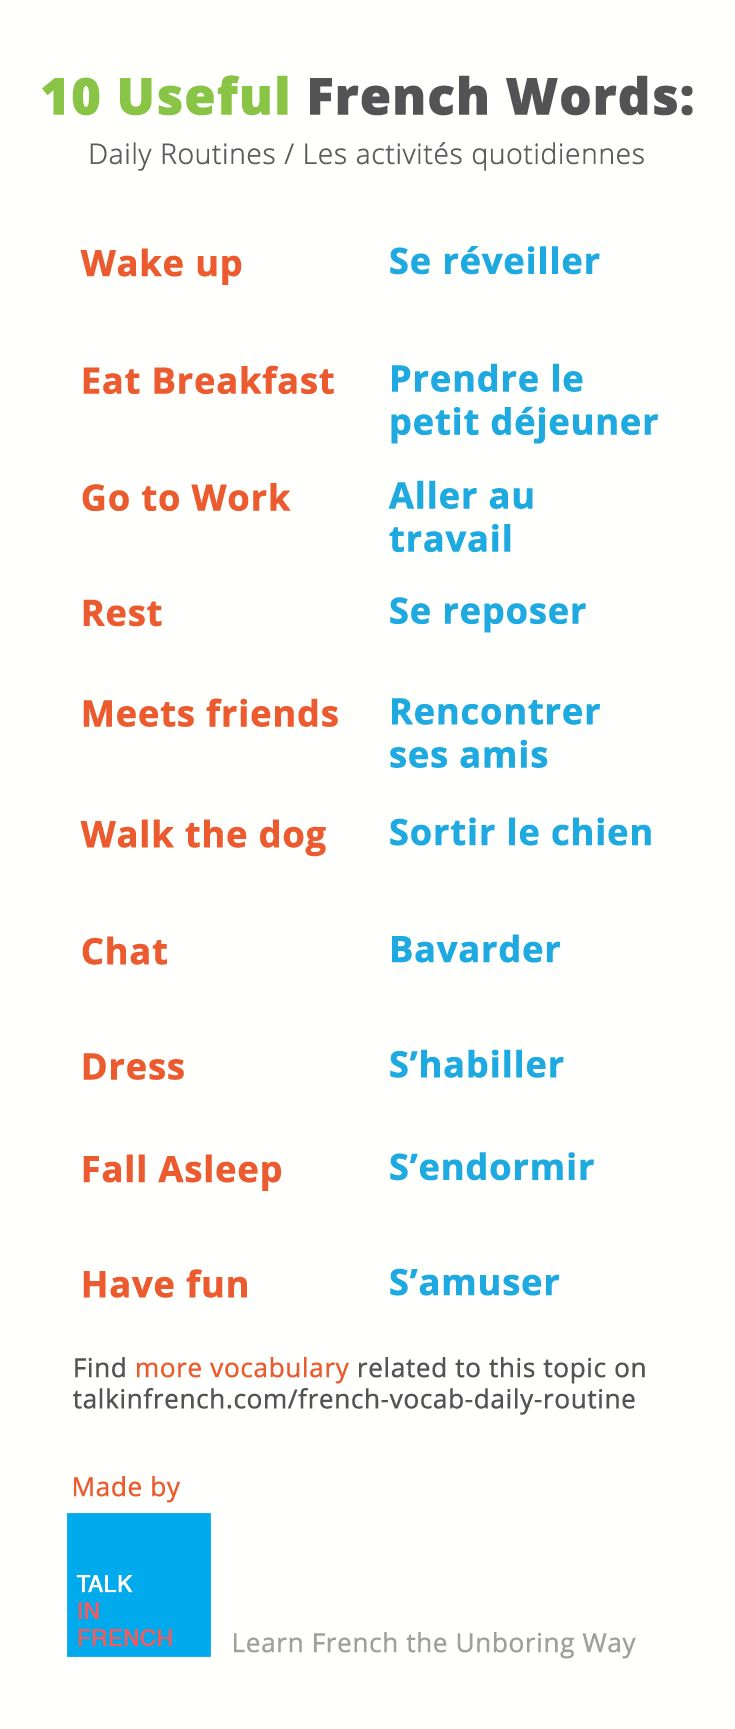 French Vocabulary: 45 Words to Express Your Daily Routine